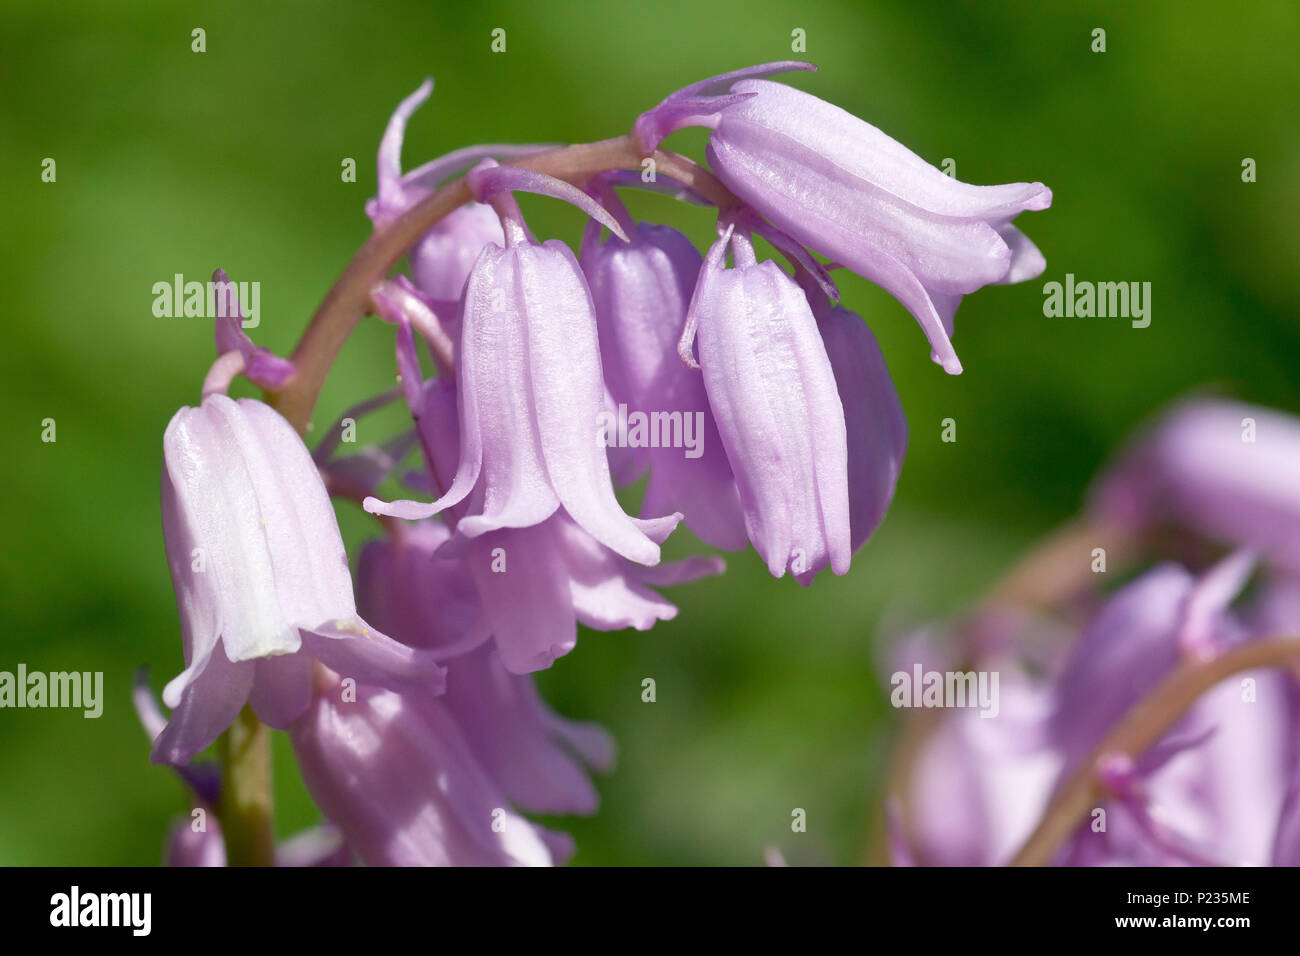 Bluebell (hyacinthoides non-scripta, also endymion non-scriptus), close up of a single flowering spike of the pink variety. - Stock Image